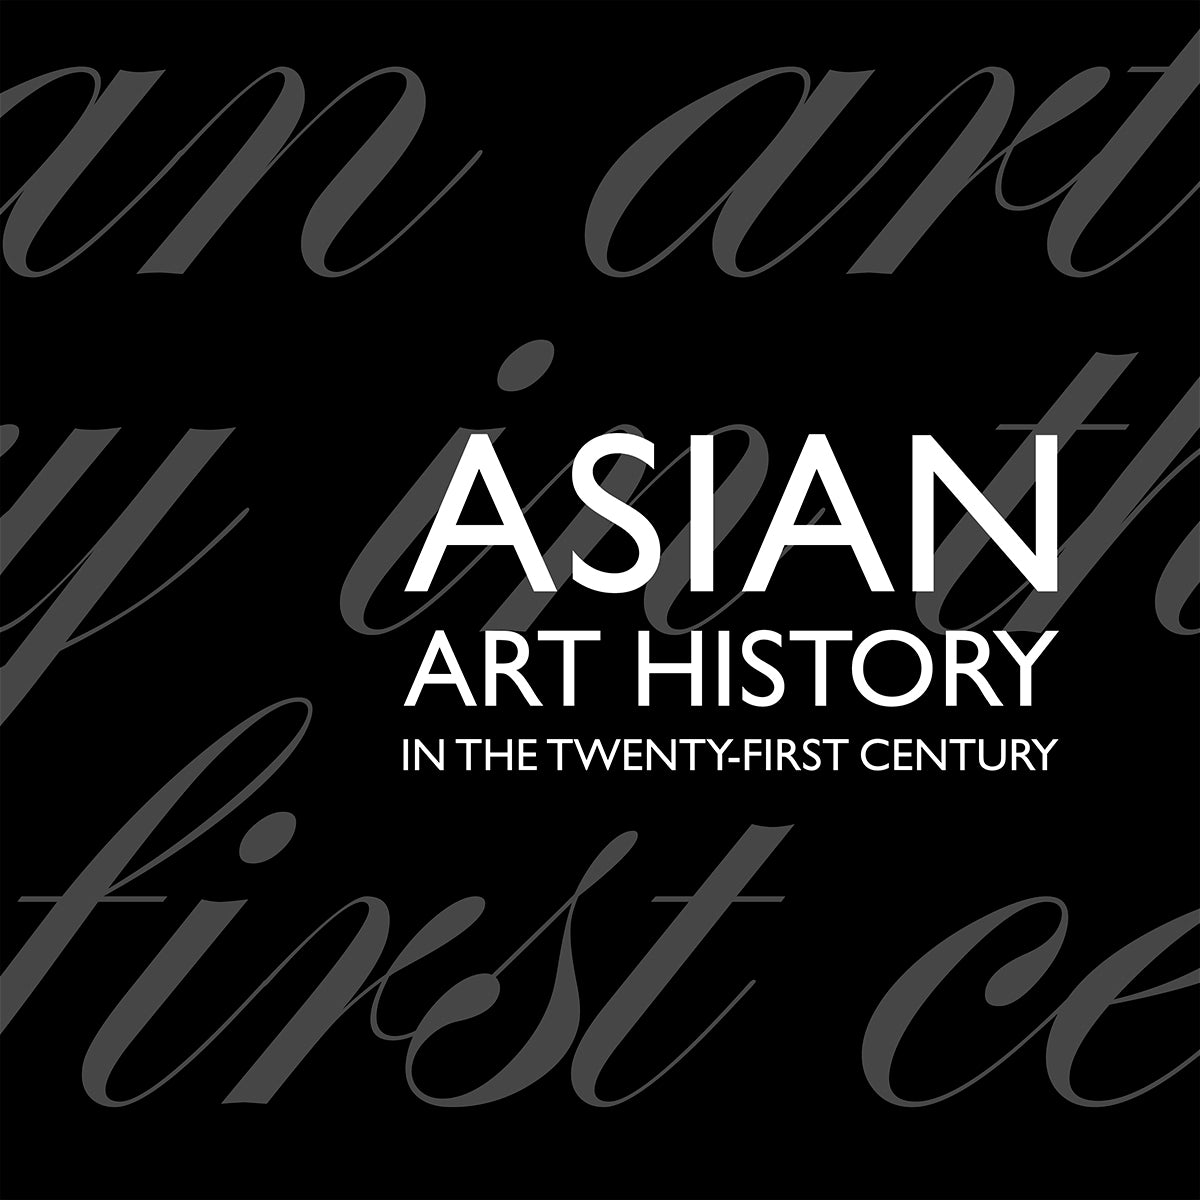 Asian Art History in the Twenty-first Century